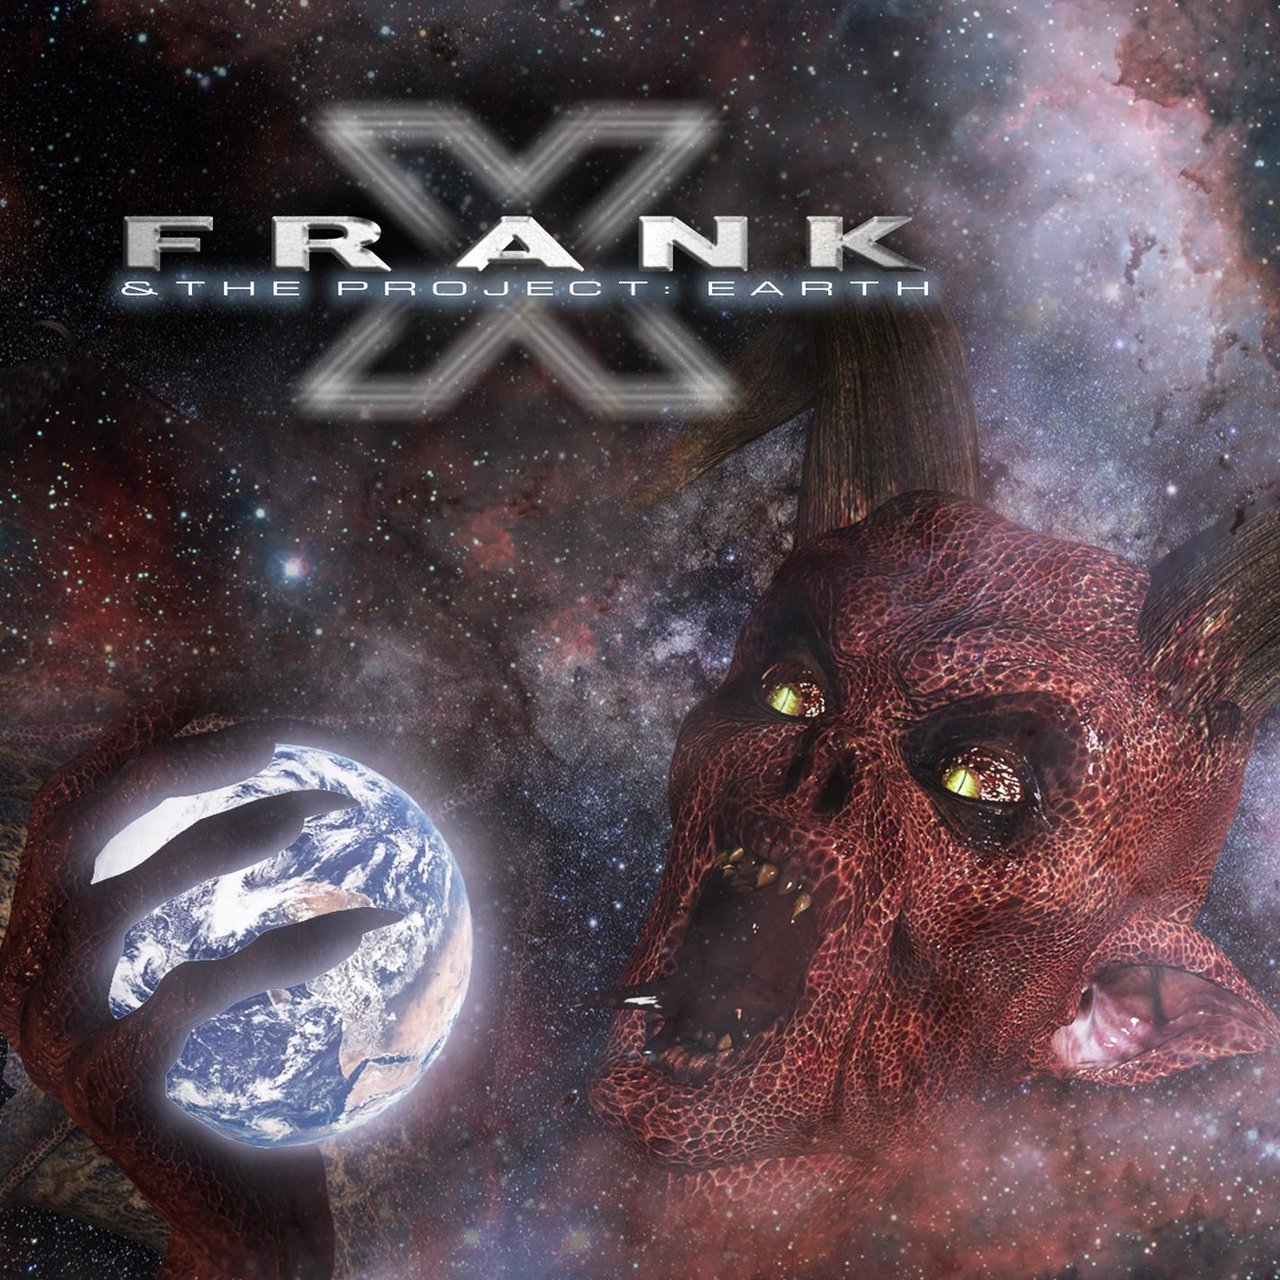 Frank X & The Project: Earth